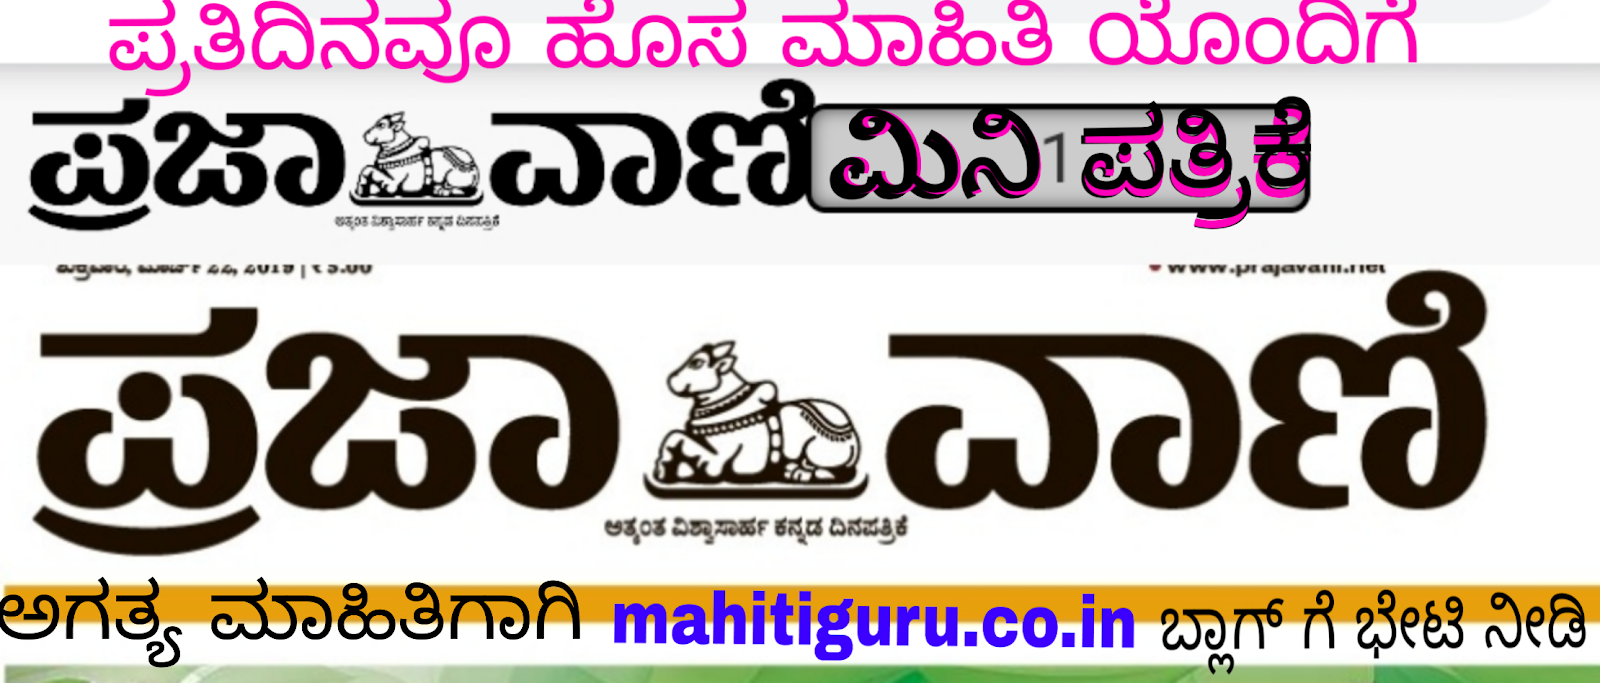 31-12-19 Today mini prajavani